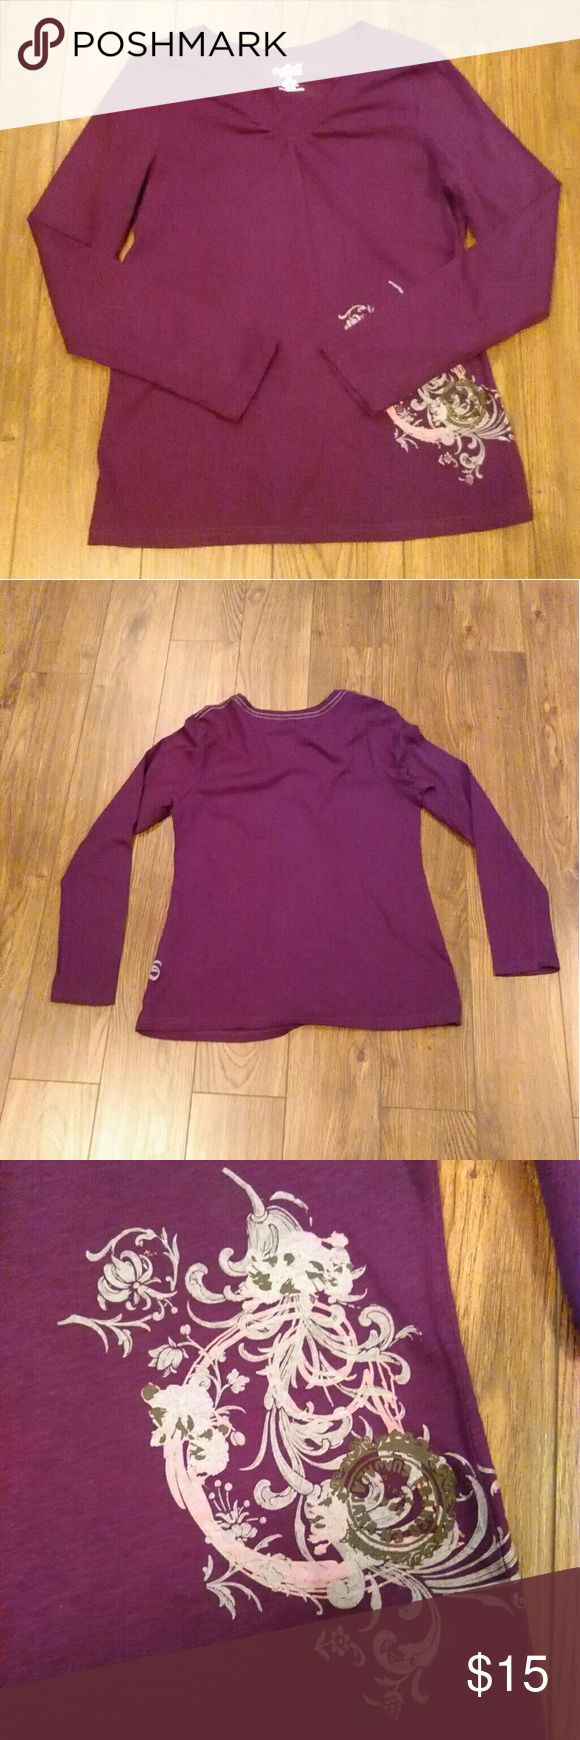 "Carhartt Purple Long Sleeve Top Size M (8/10) Carhartt For Women Purple Long Sleeve Top Size M (8/10)  100% Cotton  Appears Hardly Worn In Excellent Pre-owned Condition With No Stains Or Holes.  Aprox Measurements Taken Flat  Shoulders: 16"" Bust: 18"" Length: 23.25""  Please Check Out My Other Items.  #92 Tops Tees - Long Sleeve"